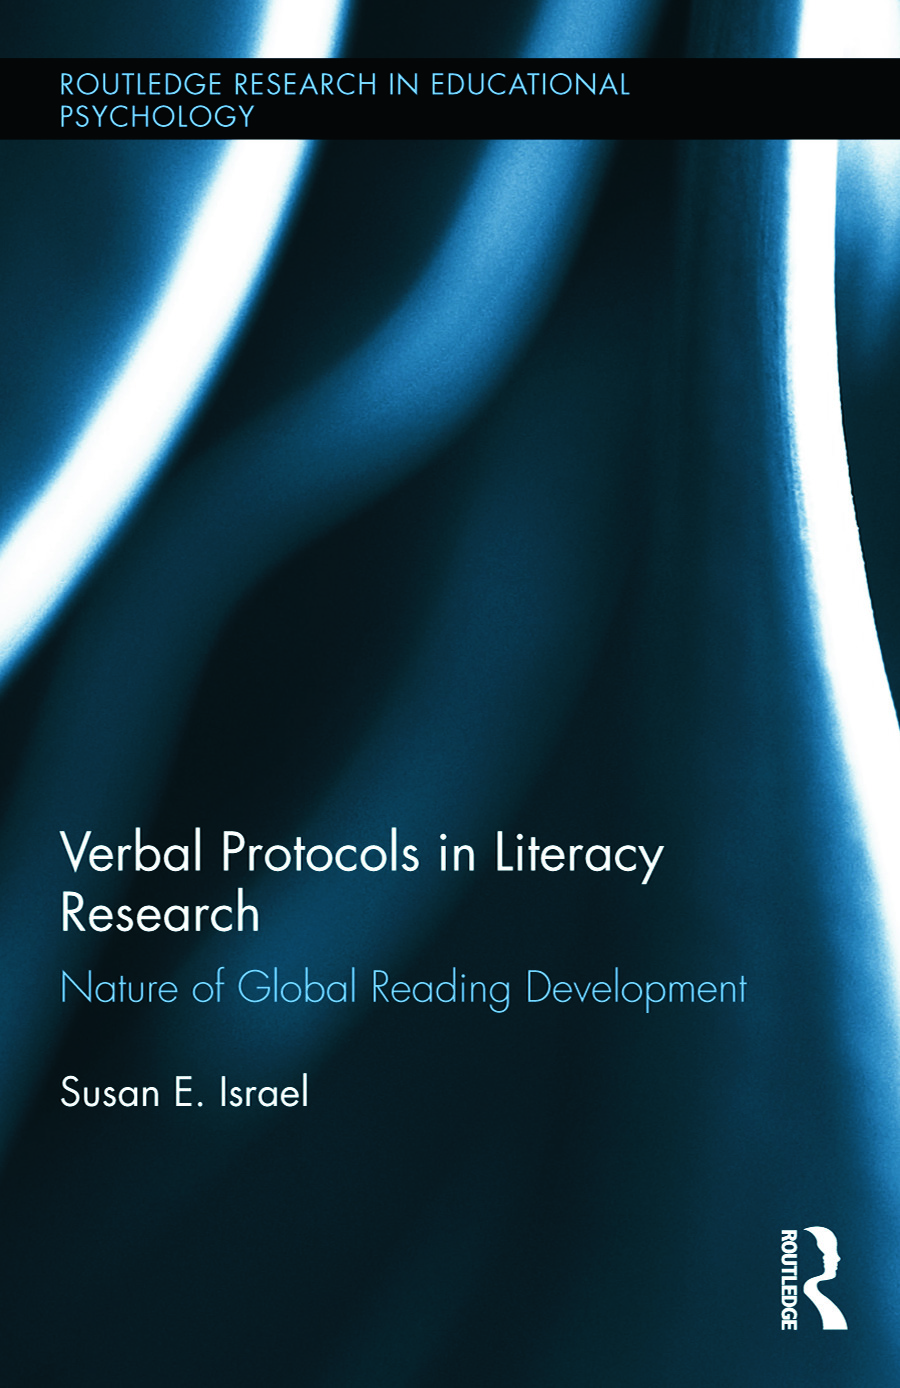 Verbal Protocols in Literacy Research: Nature of Global Reading Development book cover